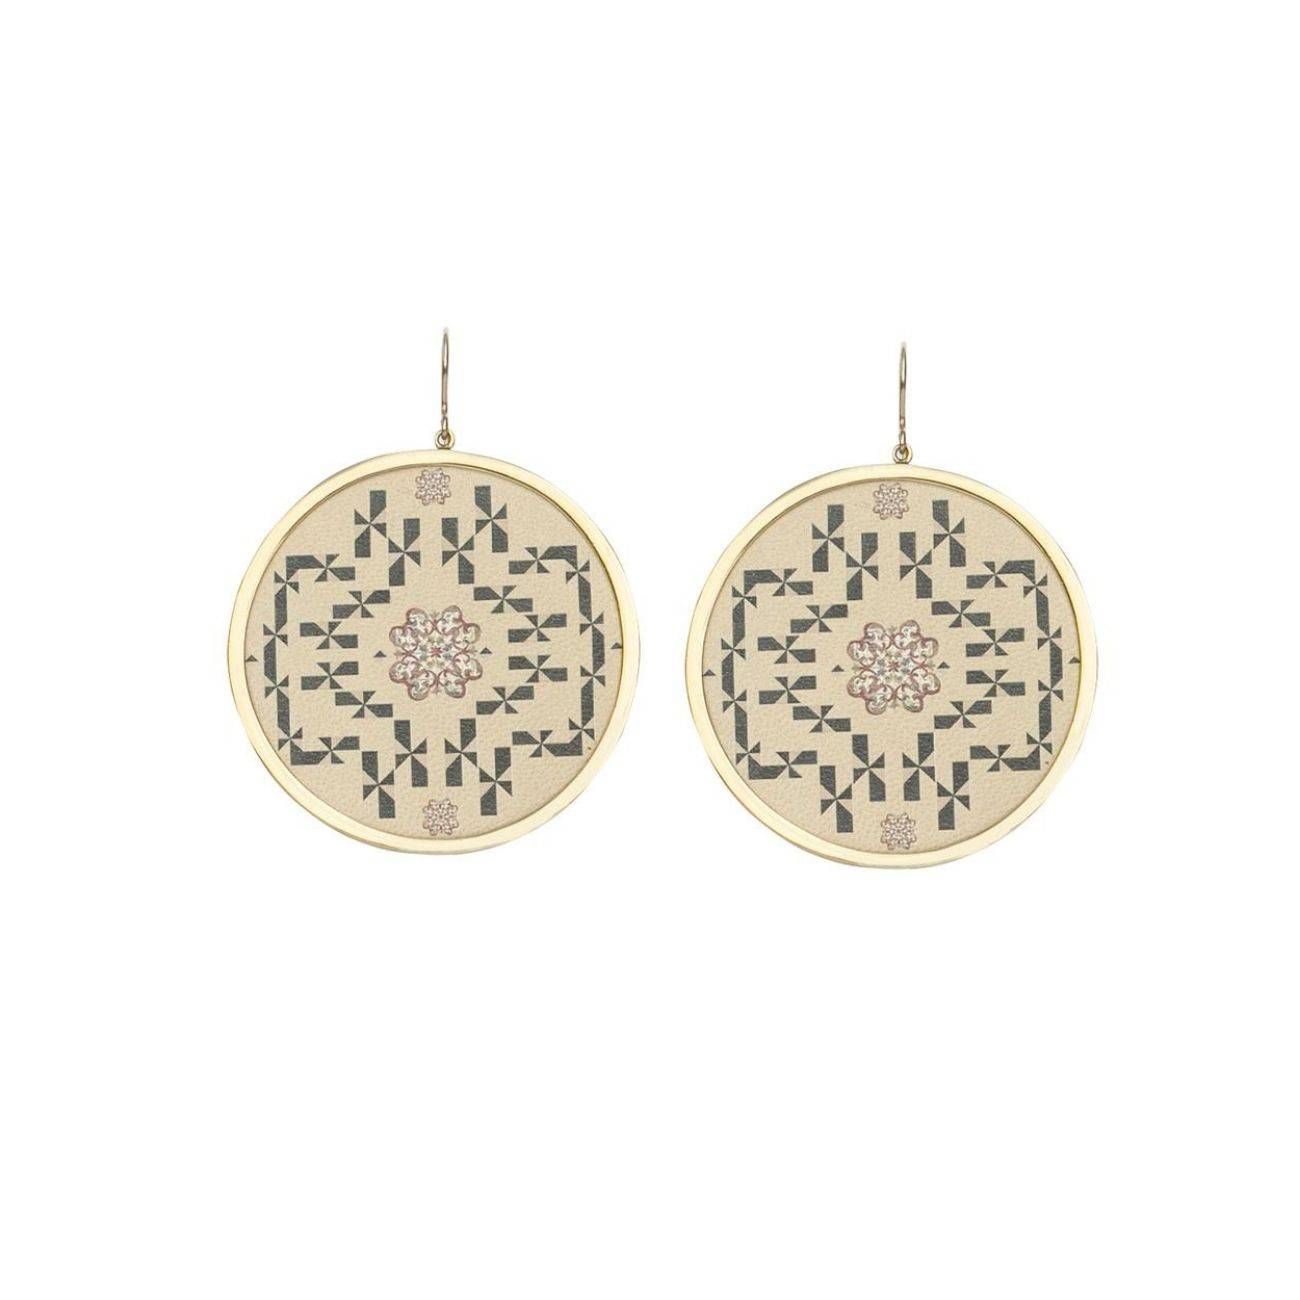 MAHCollection women's ciro sand gold plated earring